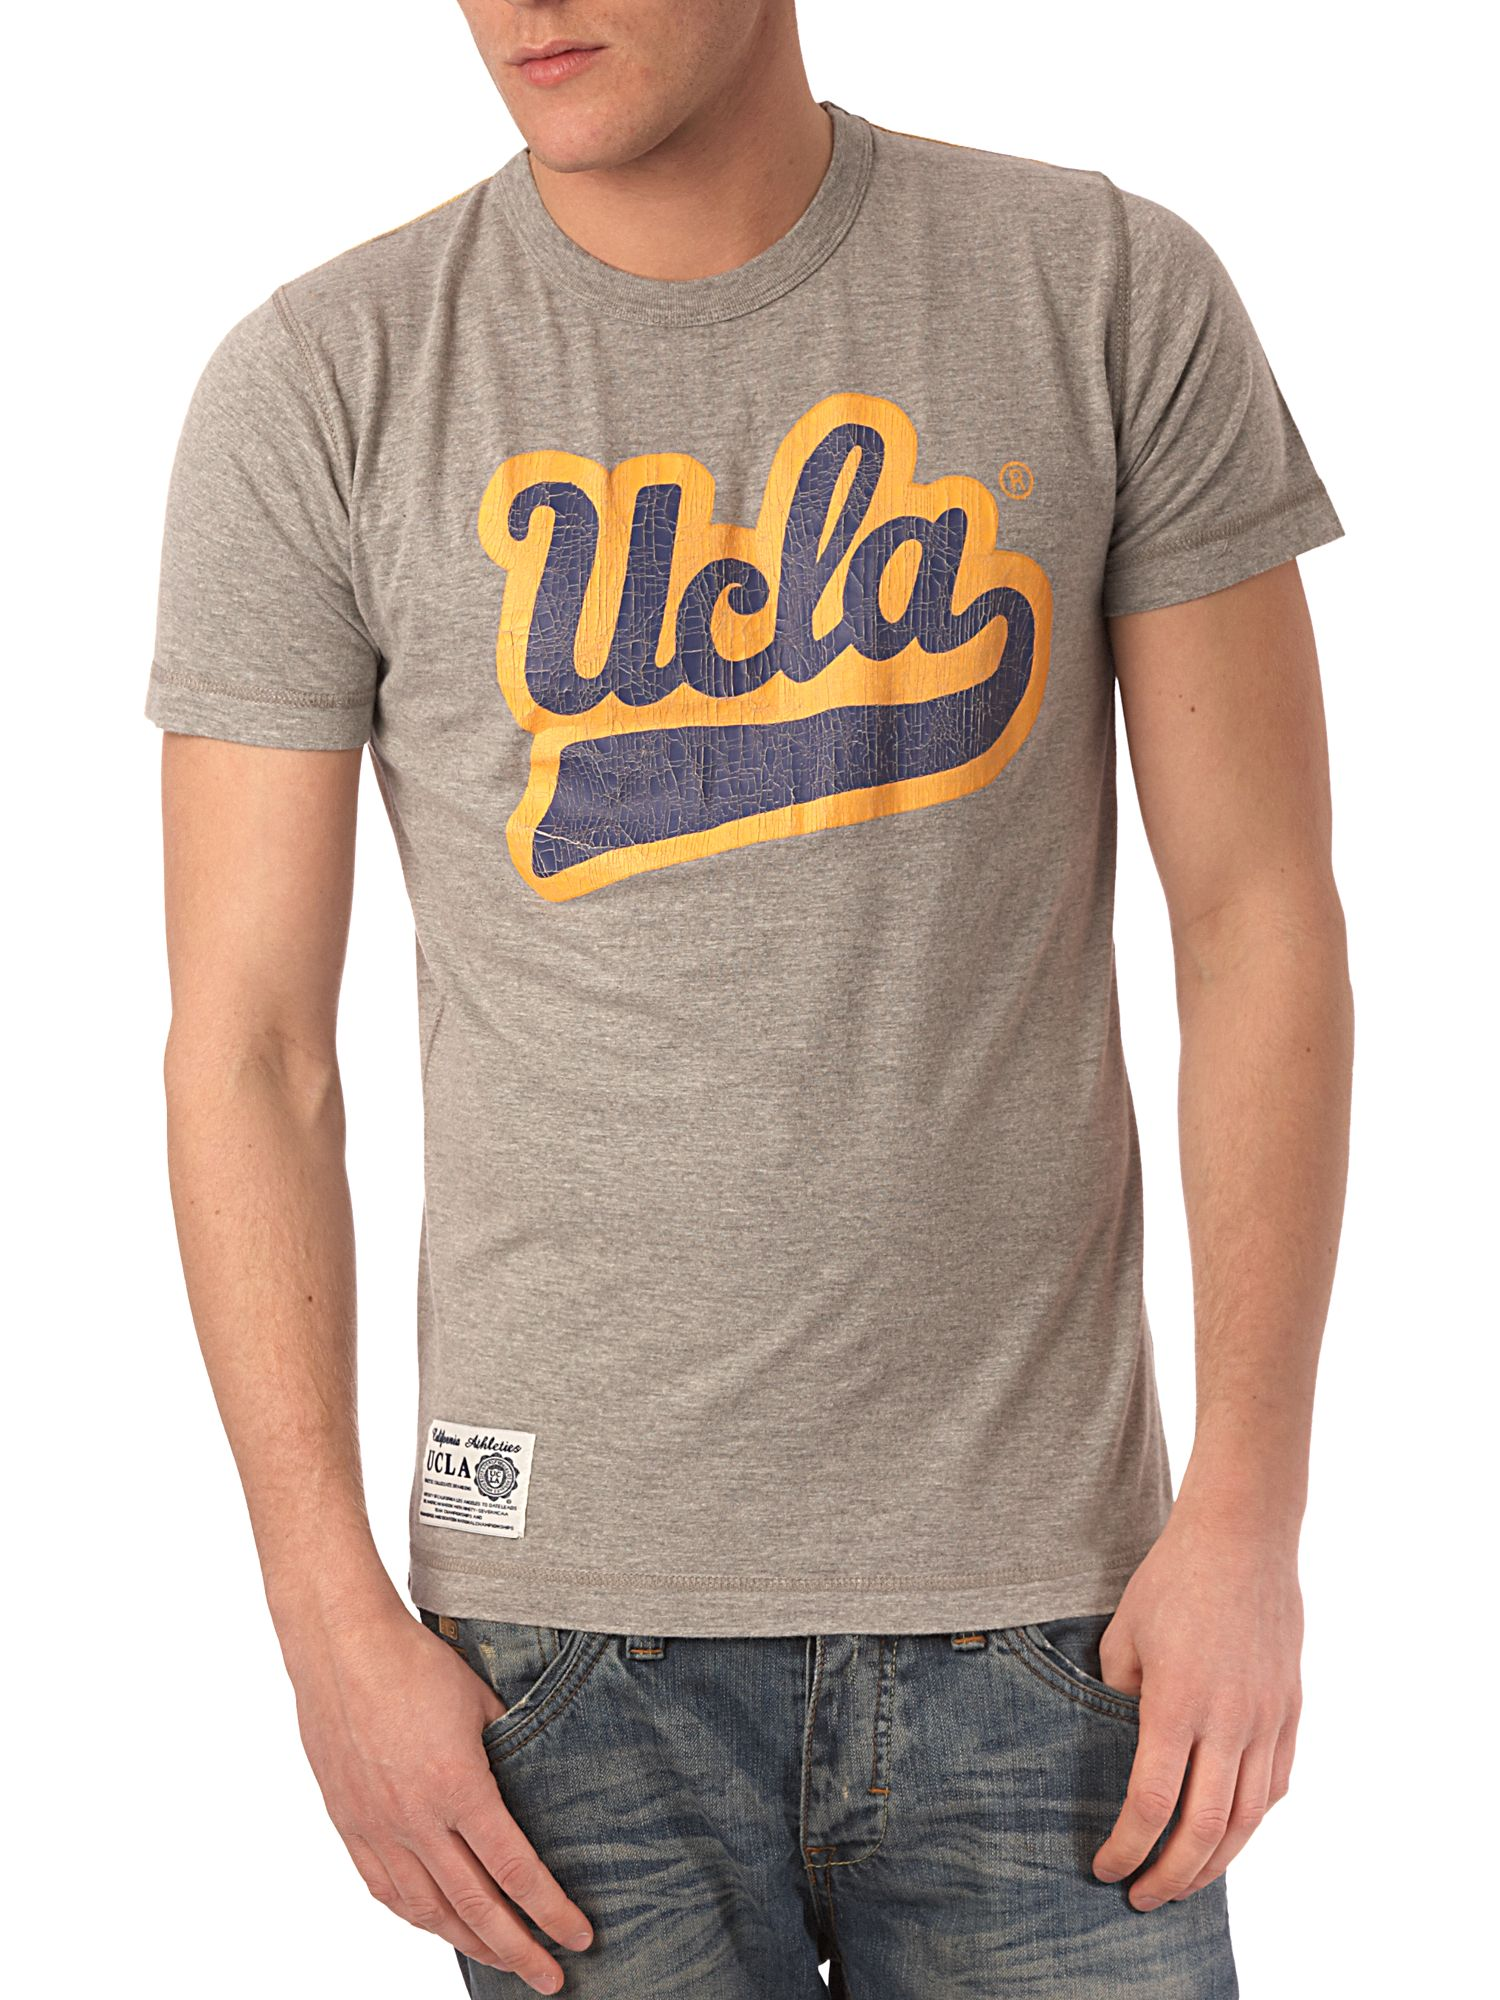 UCLA Vintage script printed T-shirt product image